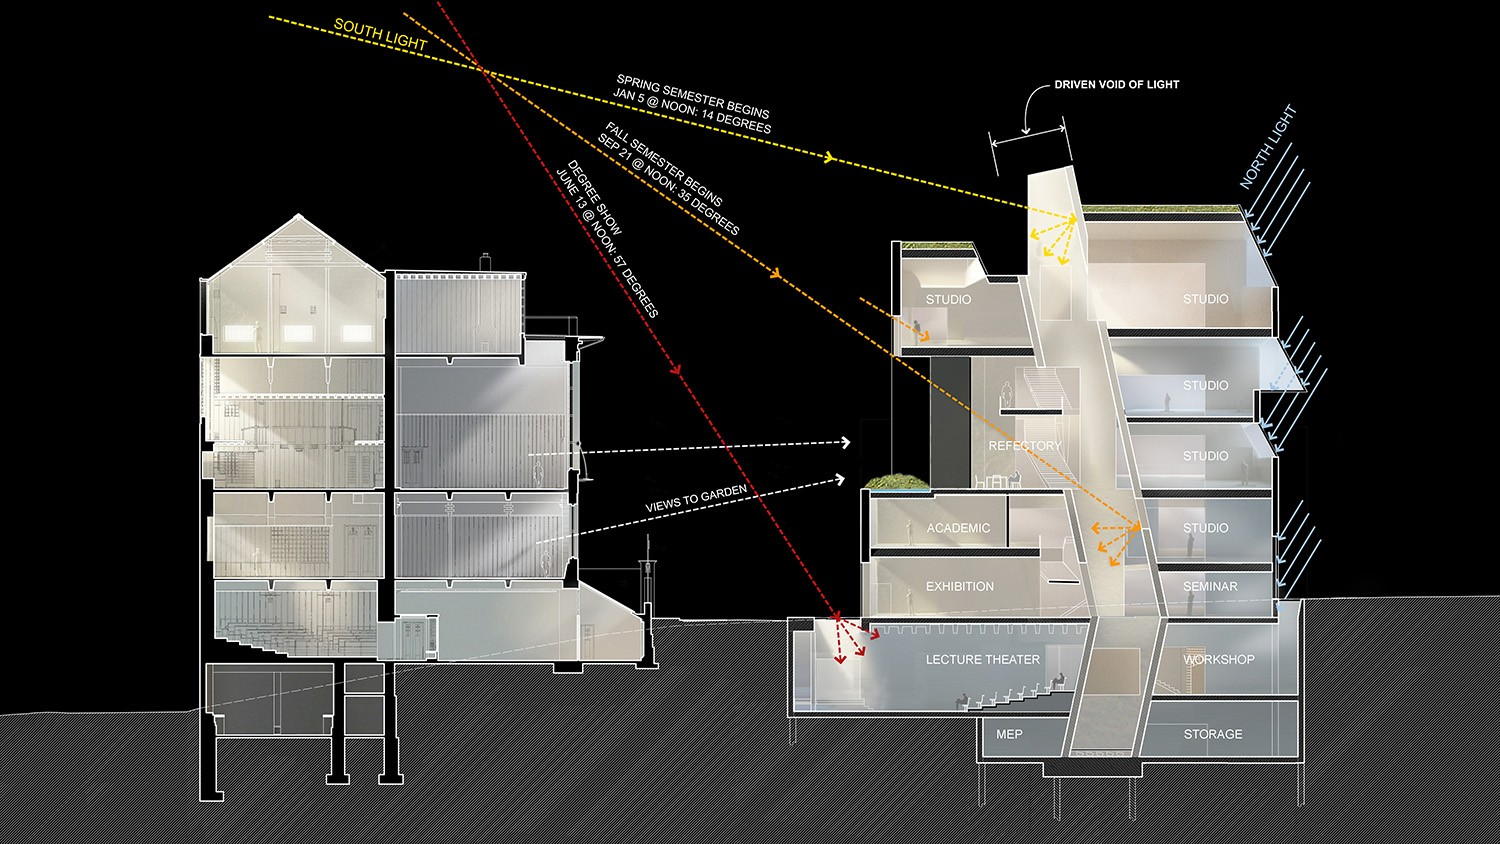 https://s3.us-east-2.amazonaws.com/steven-holl/uploads/projects/project-images/StevenHollArchitects_Glasgow_DaylightSectionDiagram_WH.jpg